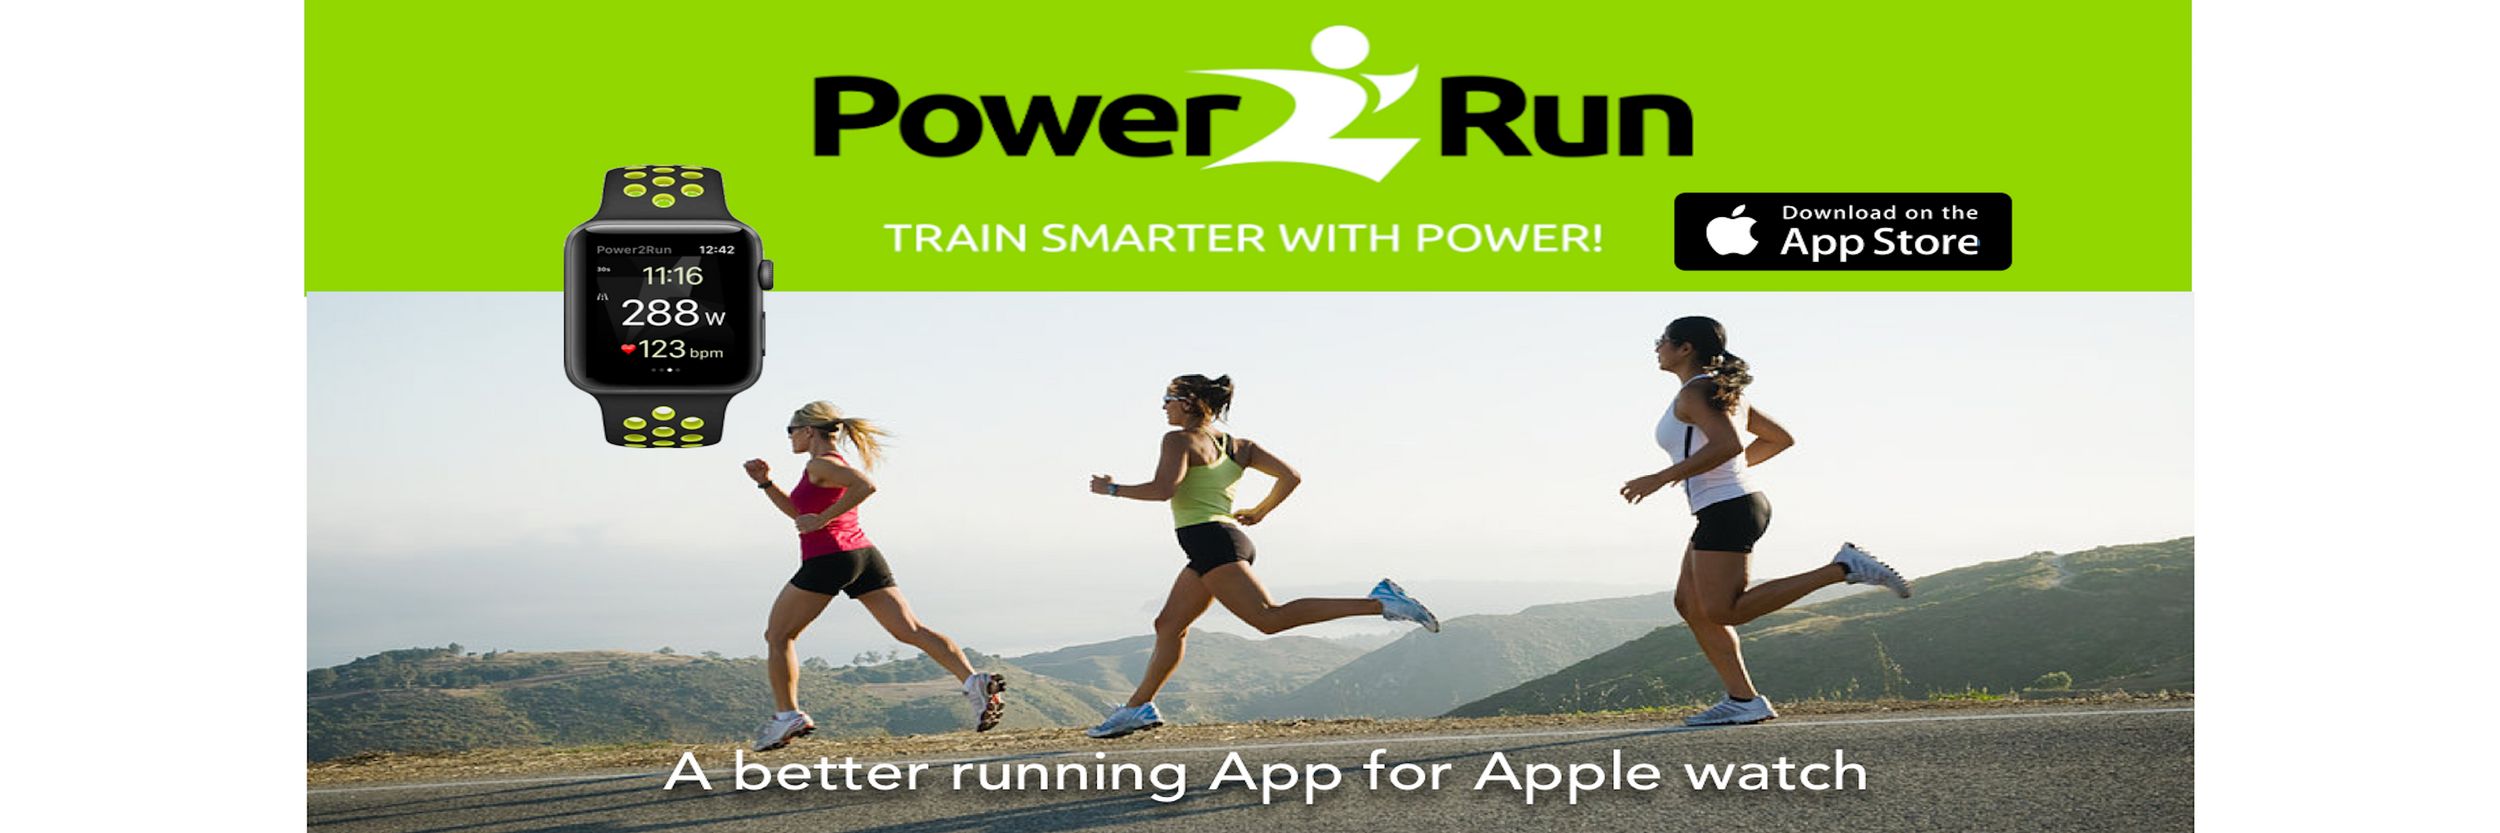 Running Links | Power2run iphone app: Discover running with